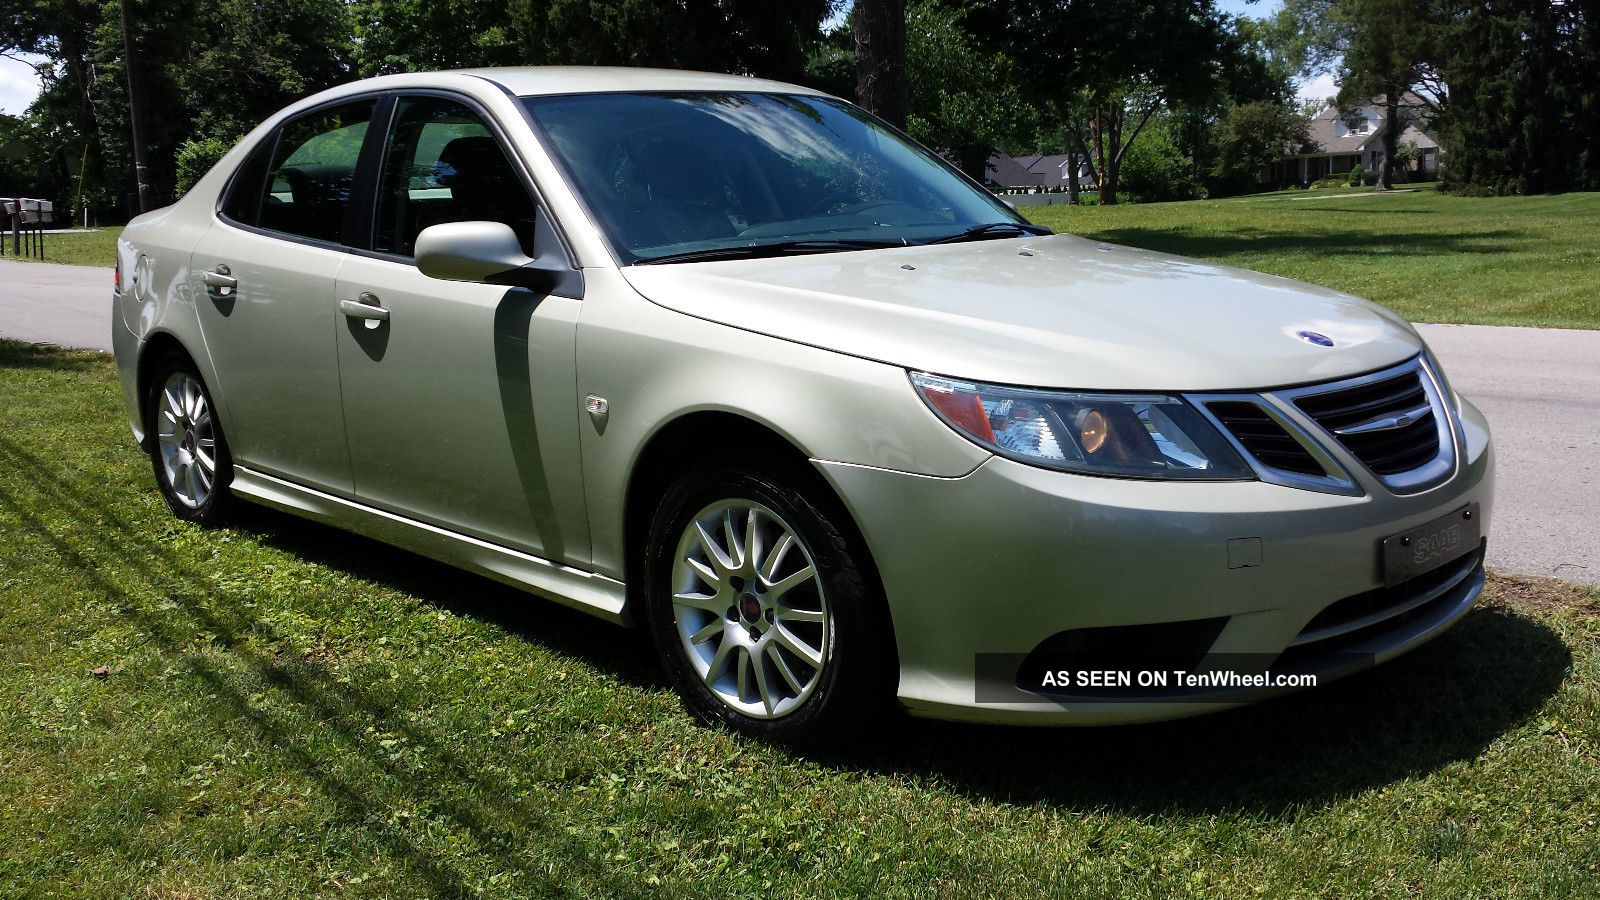 2008 Saab 9 - 3 Great Shape 9-3 photo